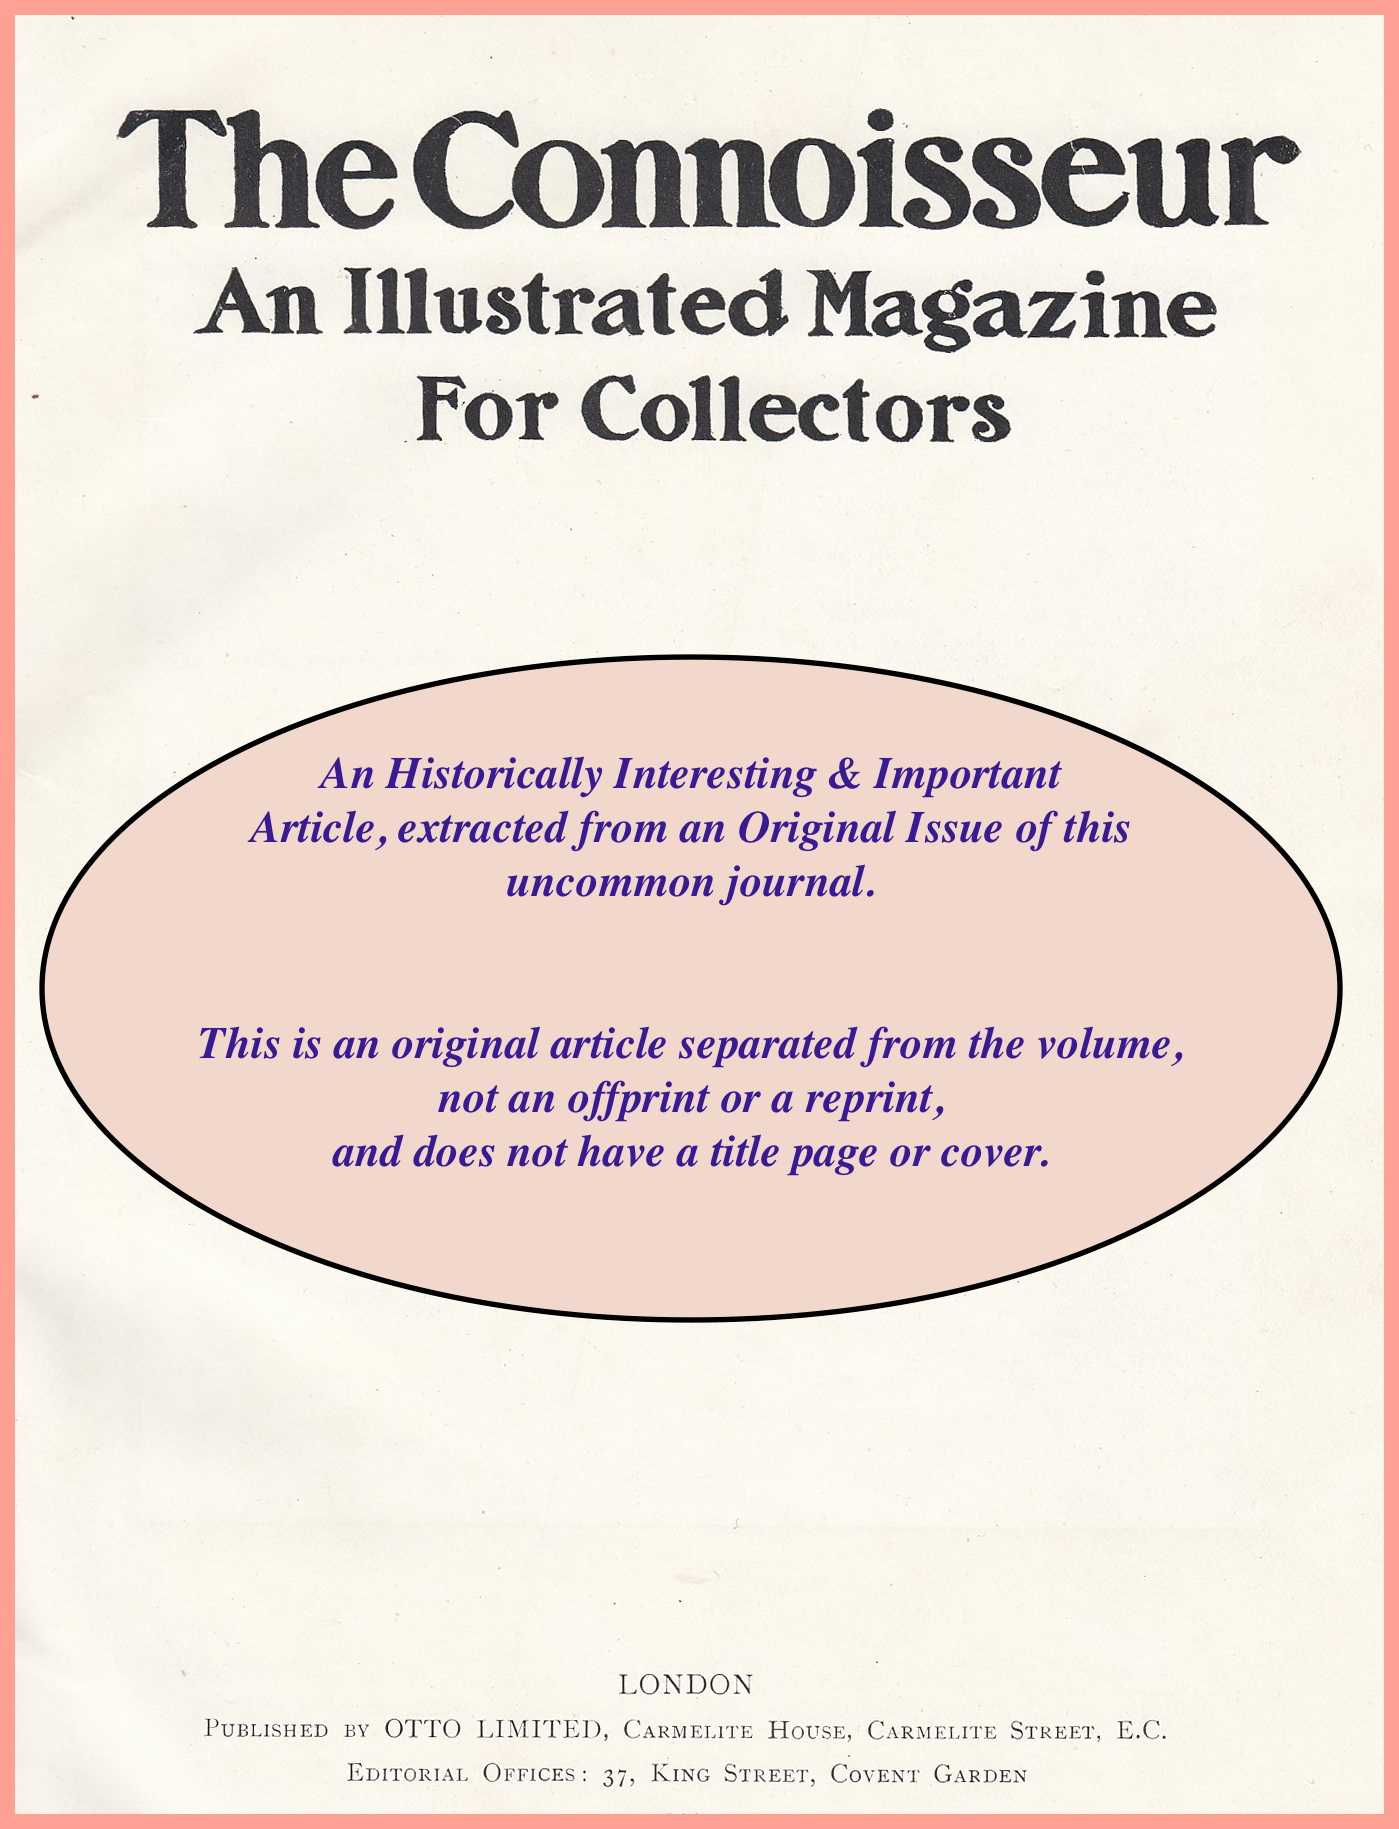 FLETCHER, J. KYRLE - A Collection of Inkpots. An original article from The Connoisseur, 1918.